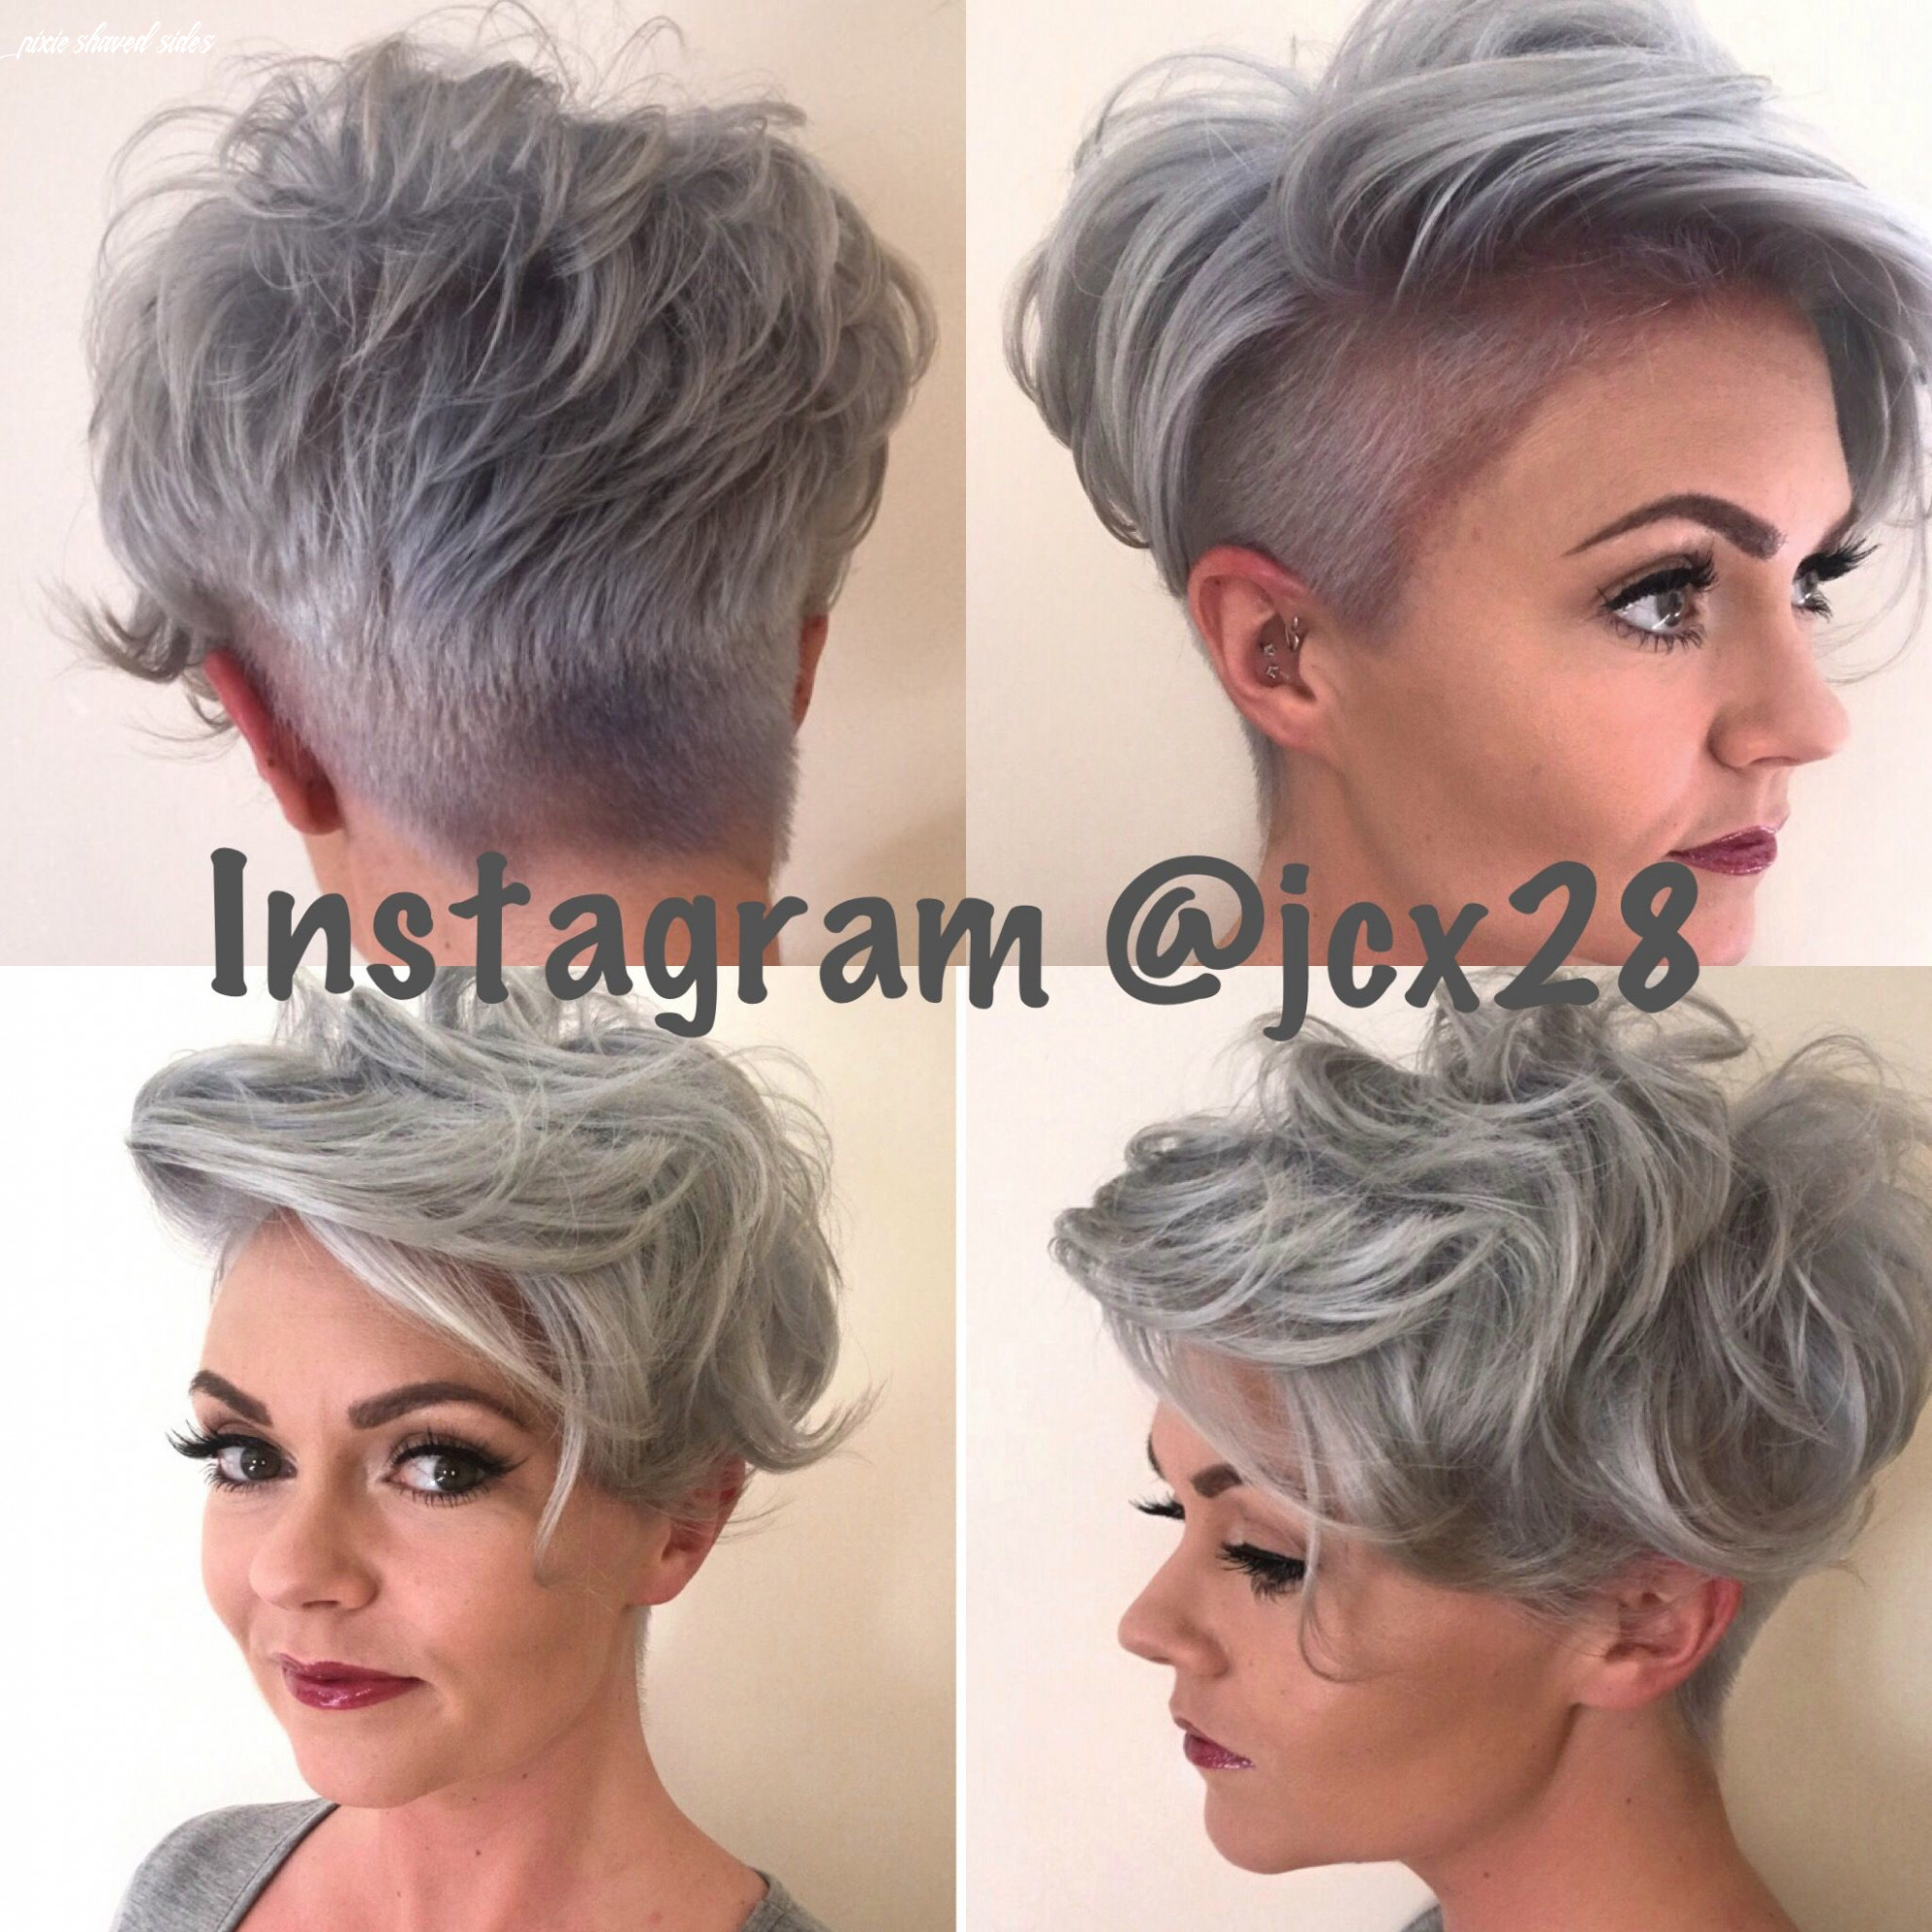 Pin on hair pixie shaved sides